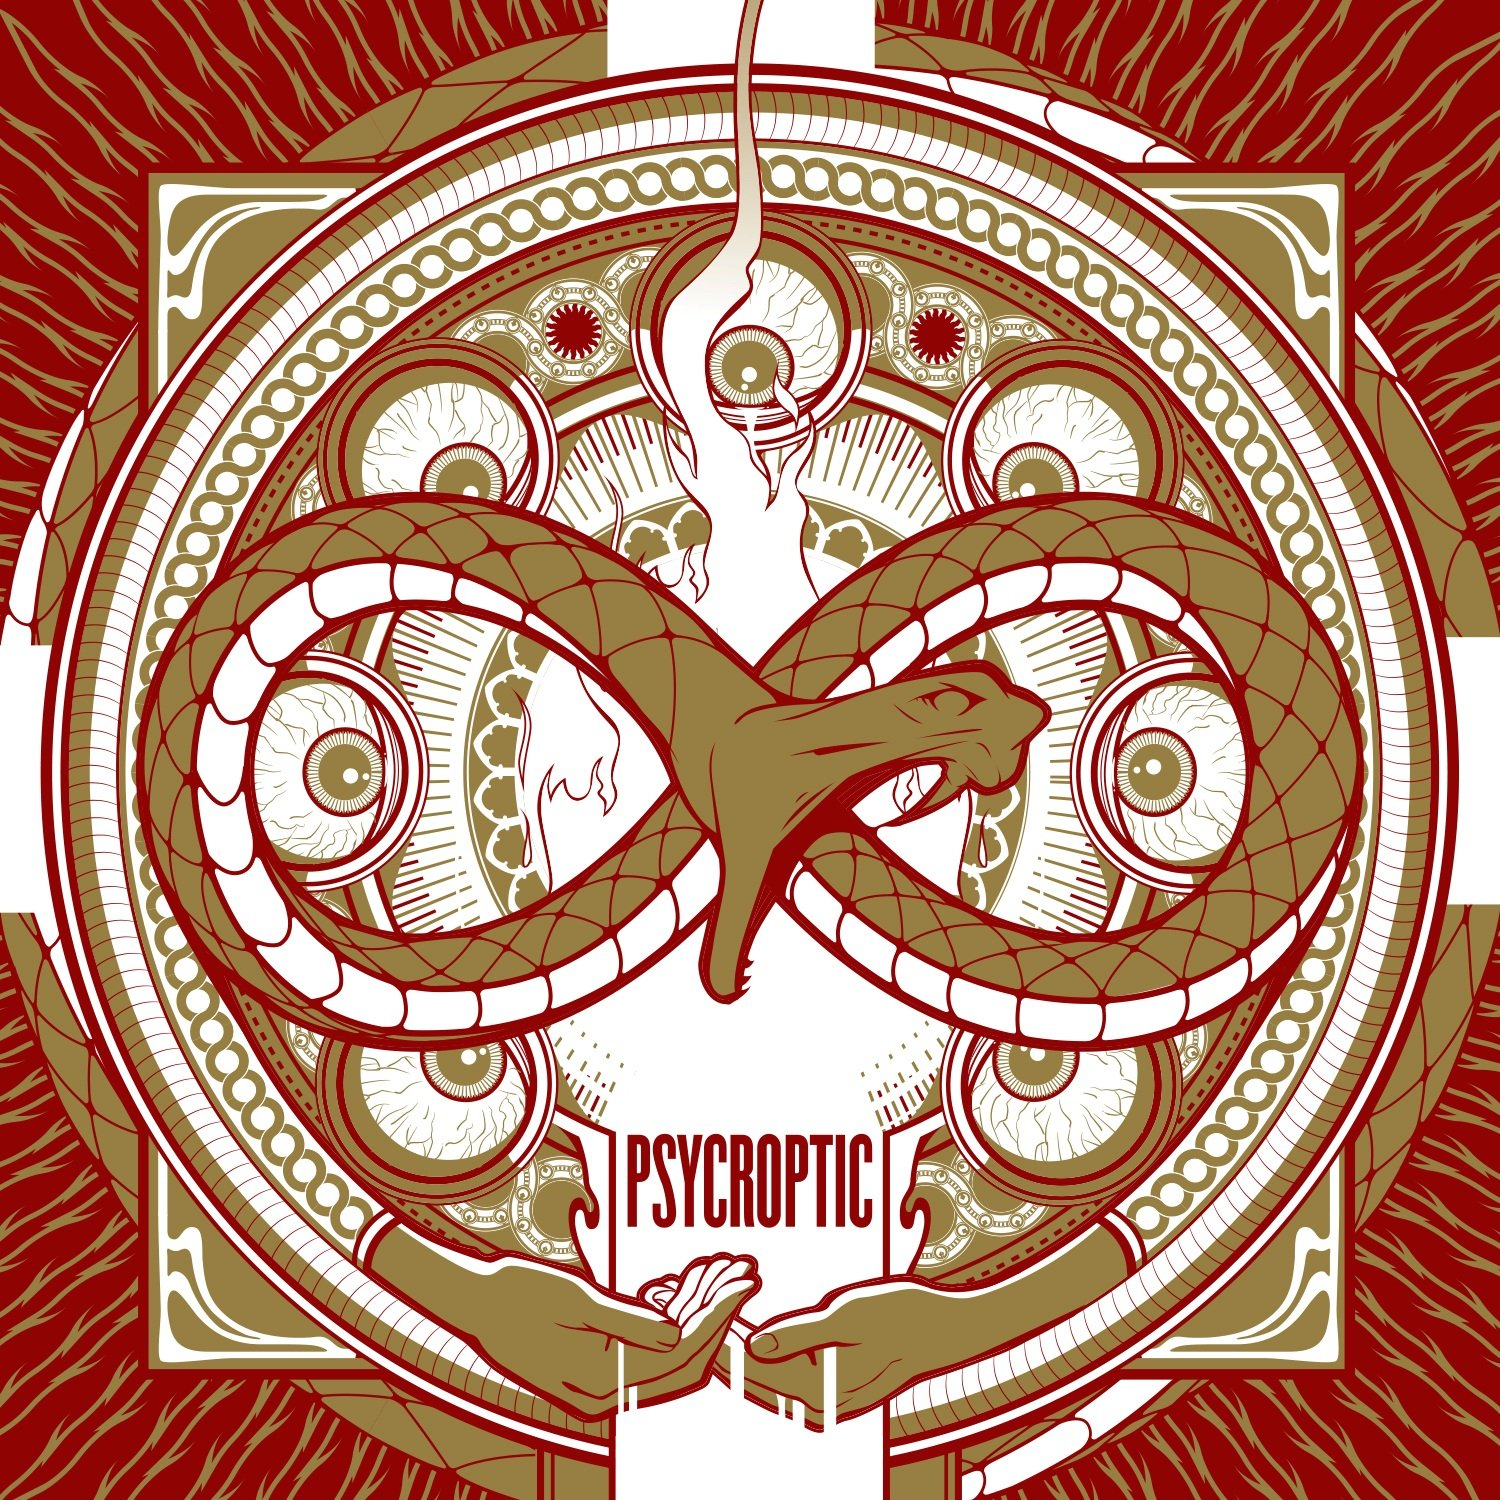 CD : Psycroptic - Psycroptic (Digipack Packaging)